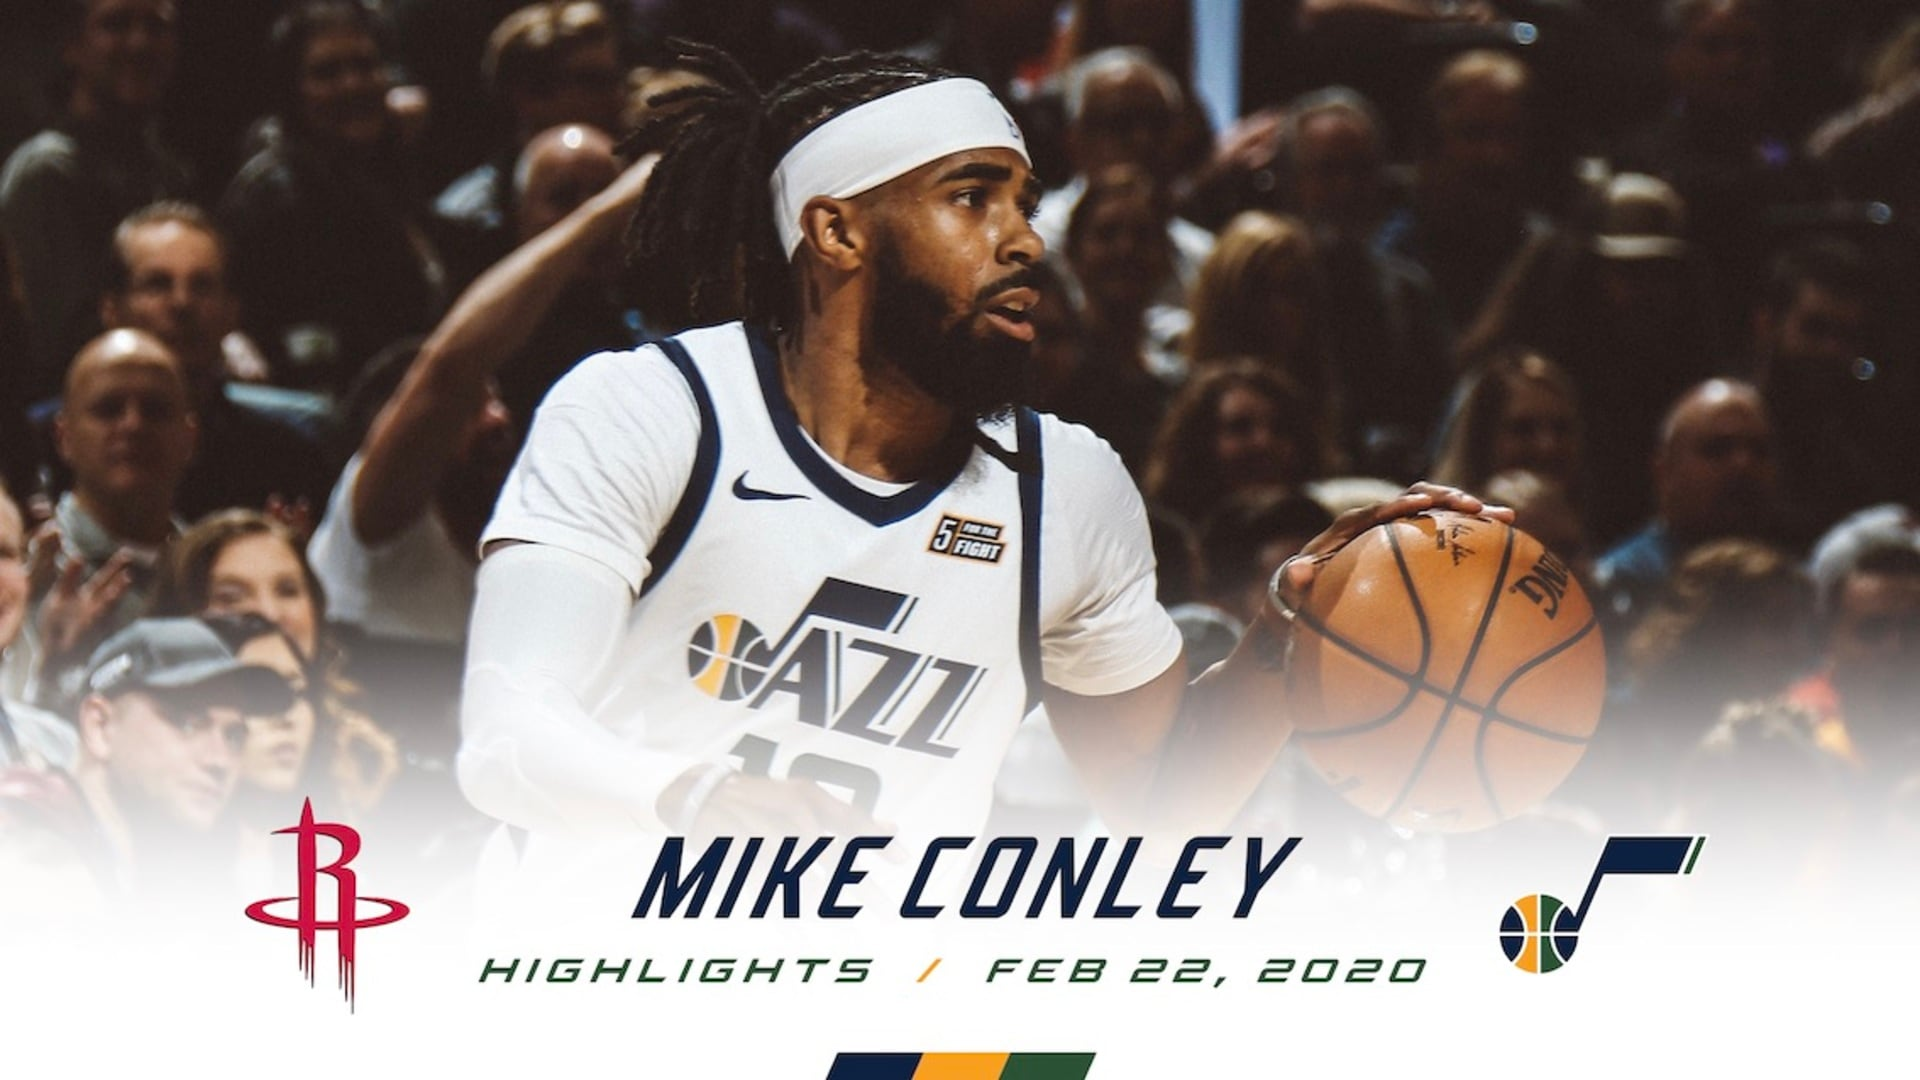 Highlights: Mike Conley — 13 points, 7 rebounds